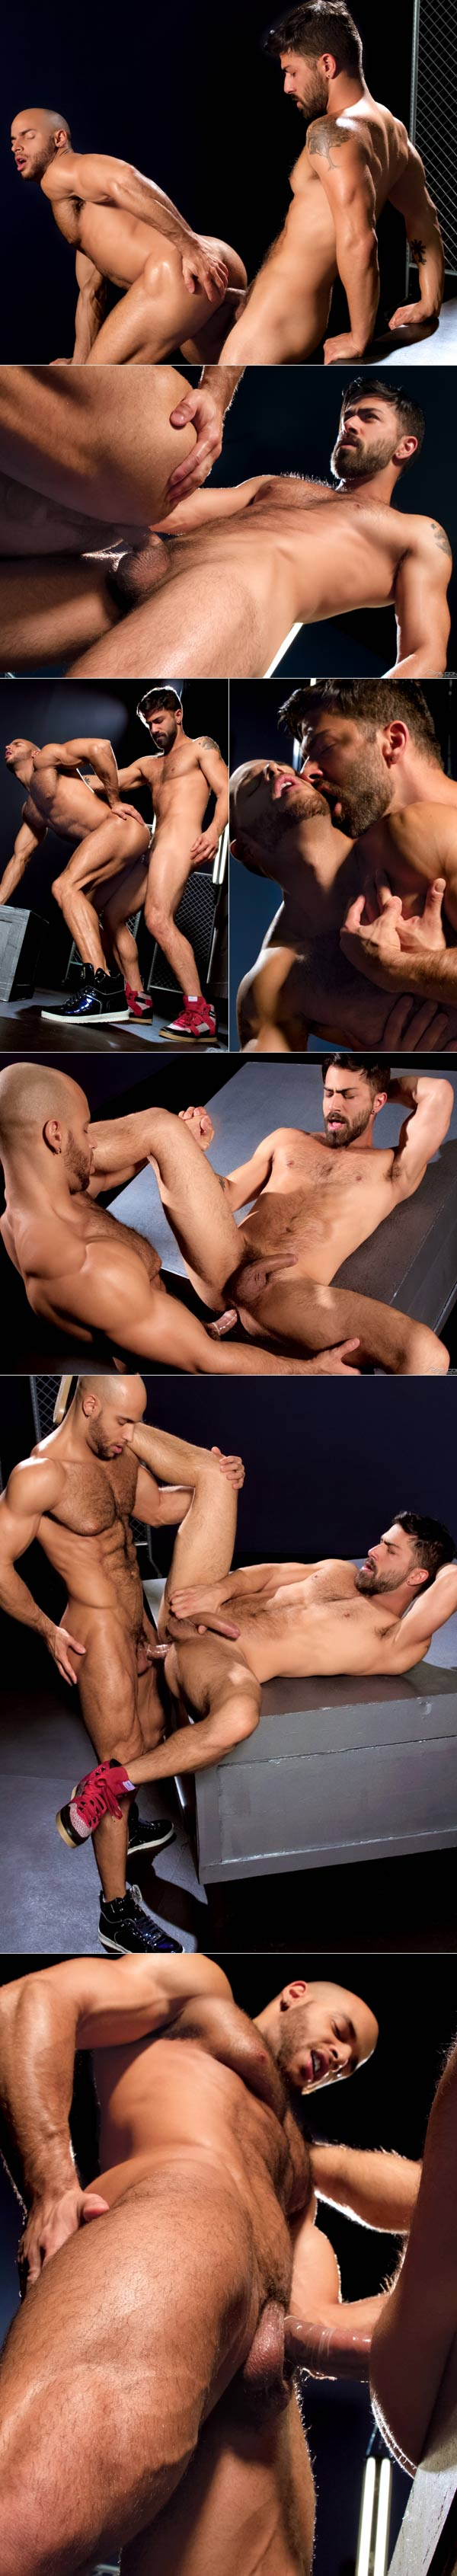 Stunners (Adam Ramzi & Sean Zevran) at FalconStudios